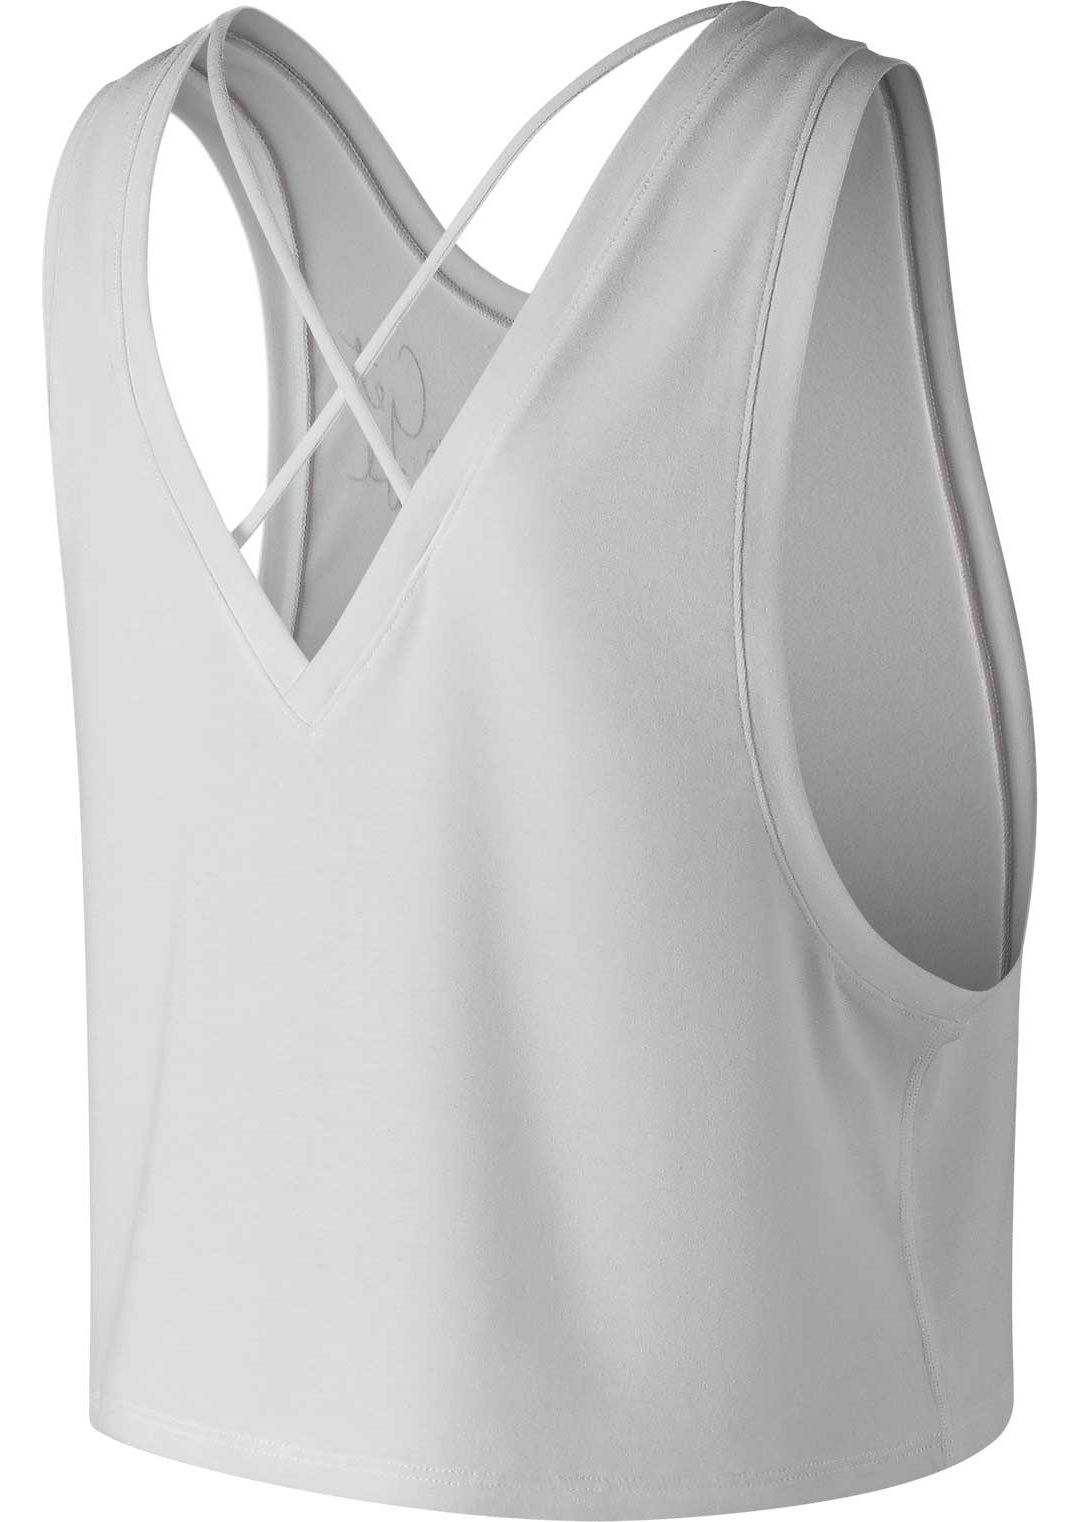 5bff48653fea9 New Balance Women's Transform Two Way Crop Tank Top. noImageFound.  Previous. 1. 2